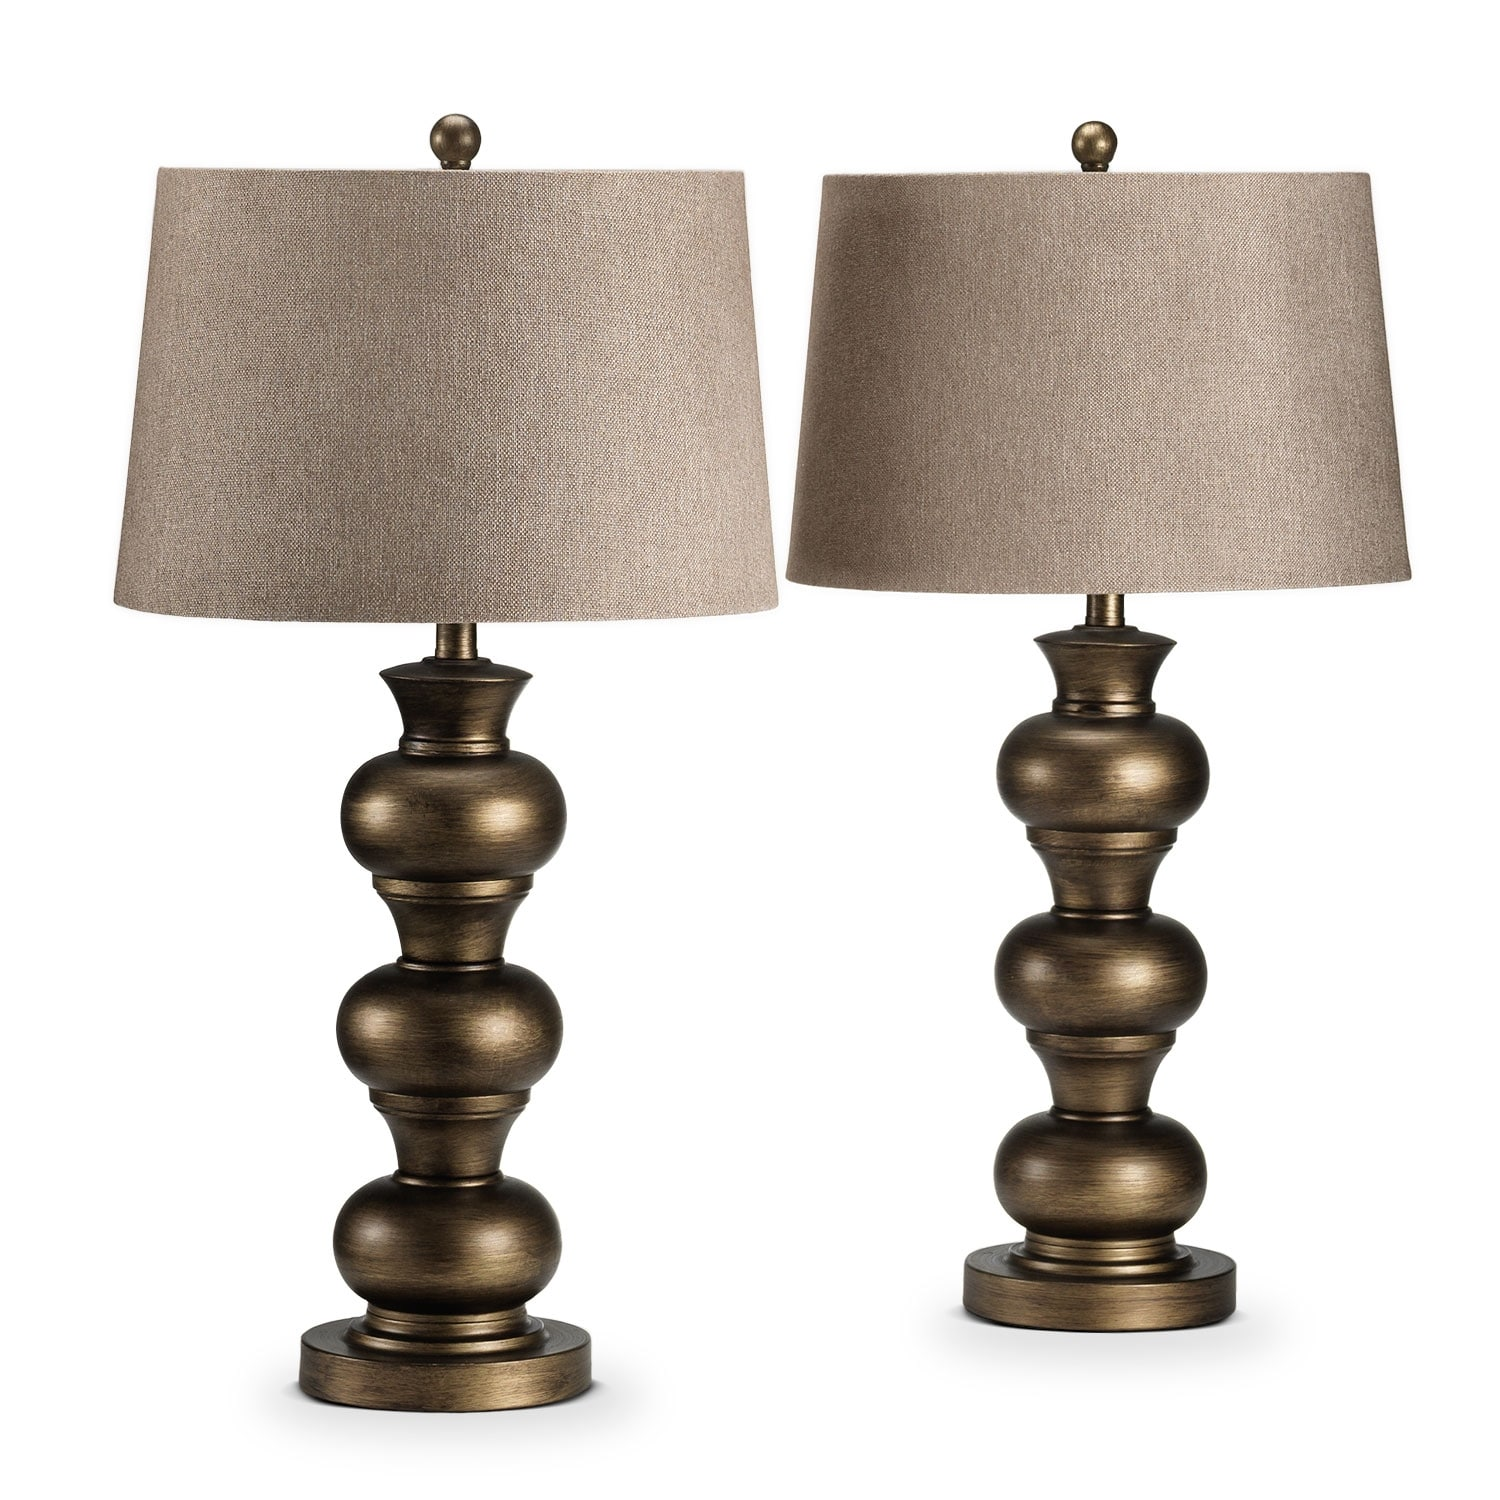 Home Accessories - Cuzco 2-Pack Table Lamps